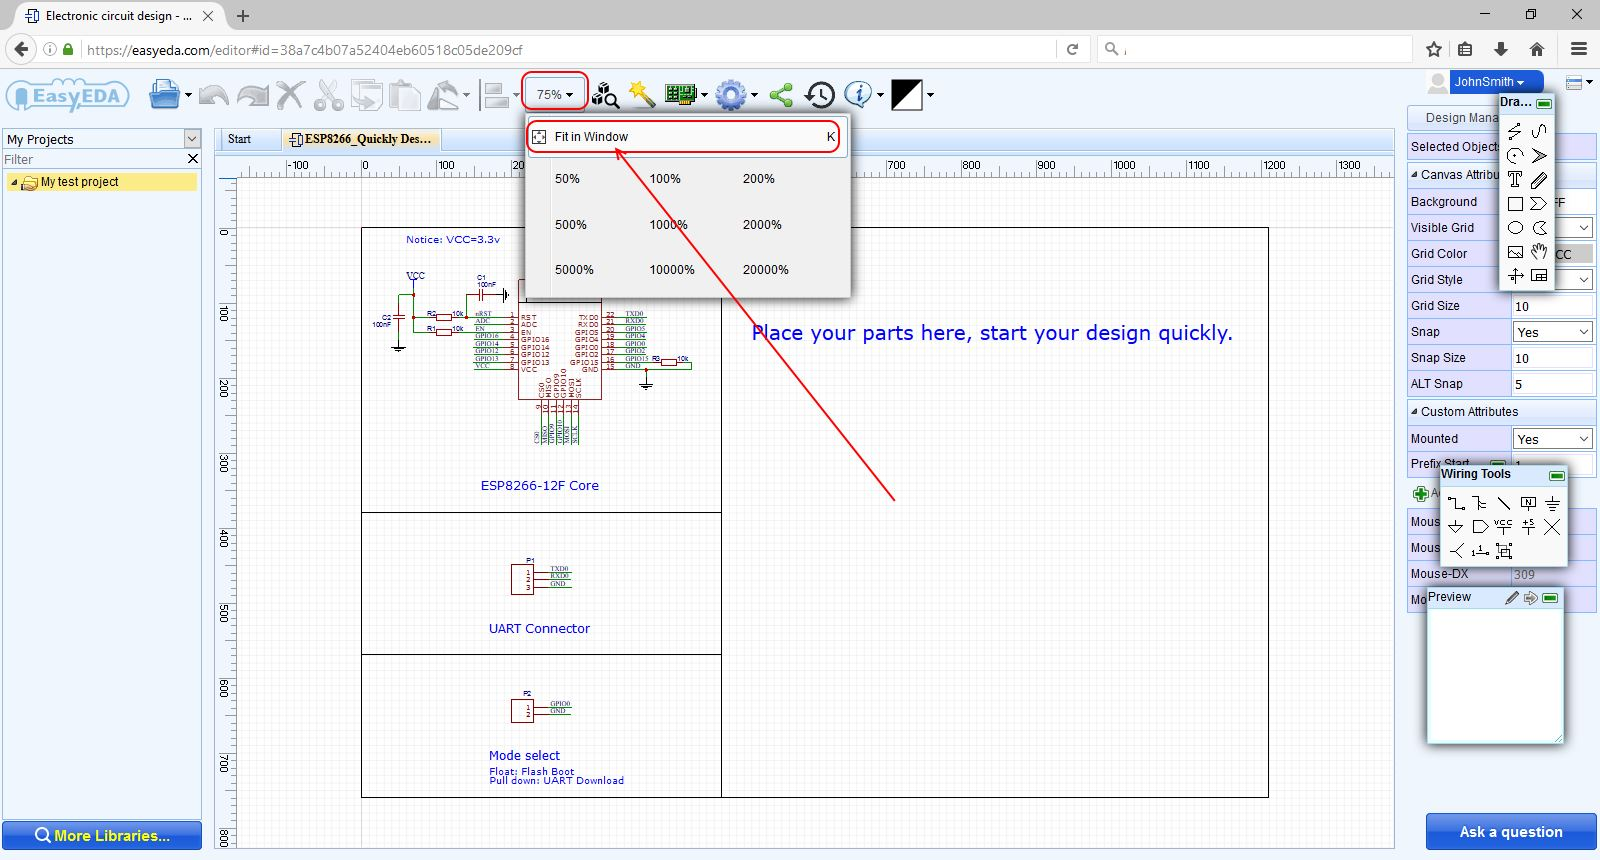 How To Make A Simple Circuit For Beginners Easyeda Free Online Library On Electronics Schematic Diagrams Easyeda11 Zoom